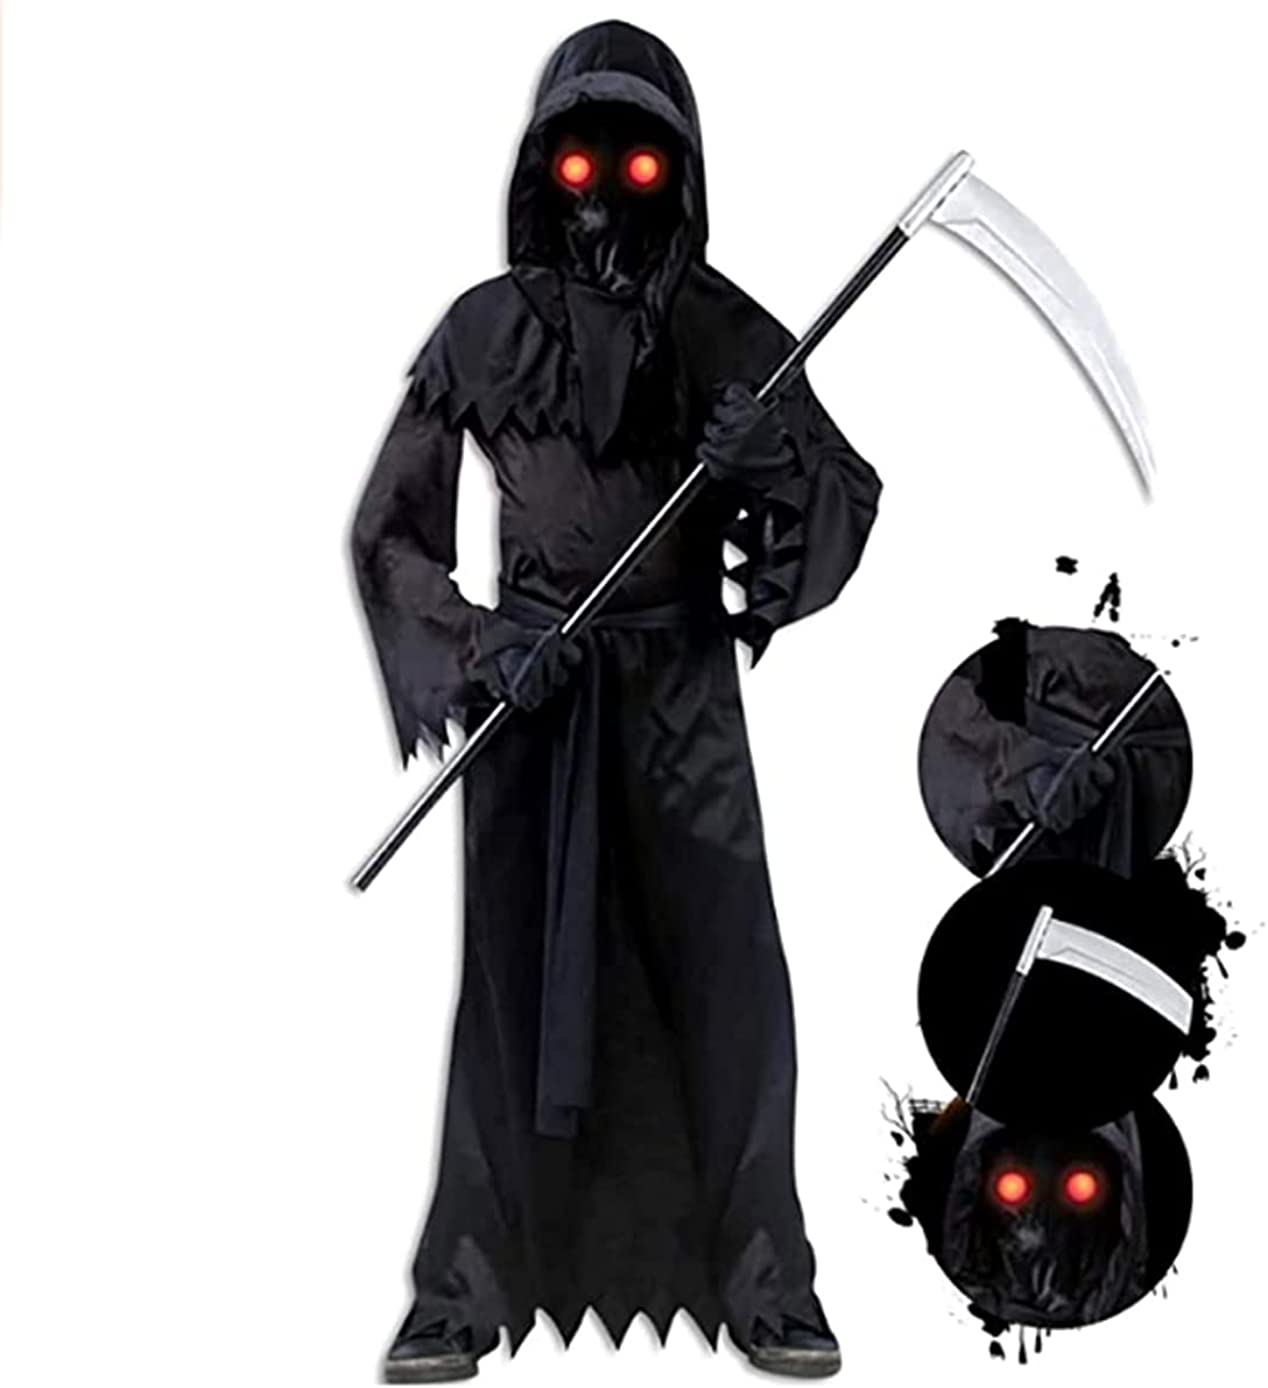 Grim Inventory cleanup selling sale Virginia Beach Mall Reaper Costume for Kids with Ligh Costumes Halloween Scary